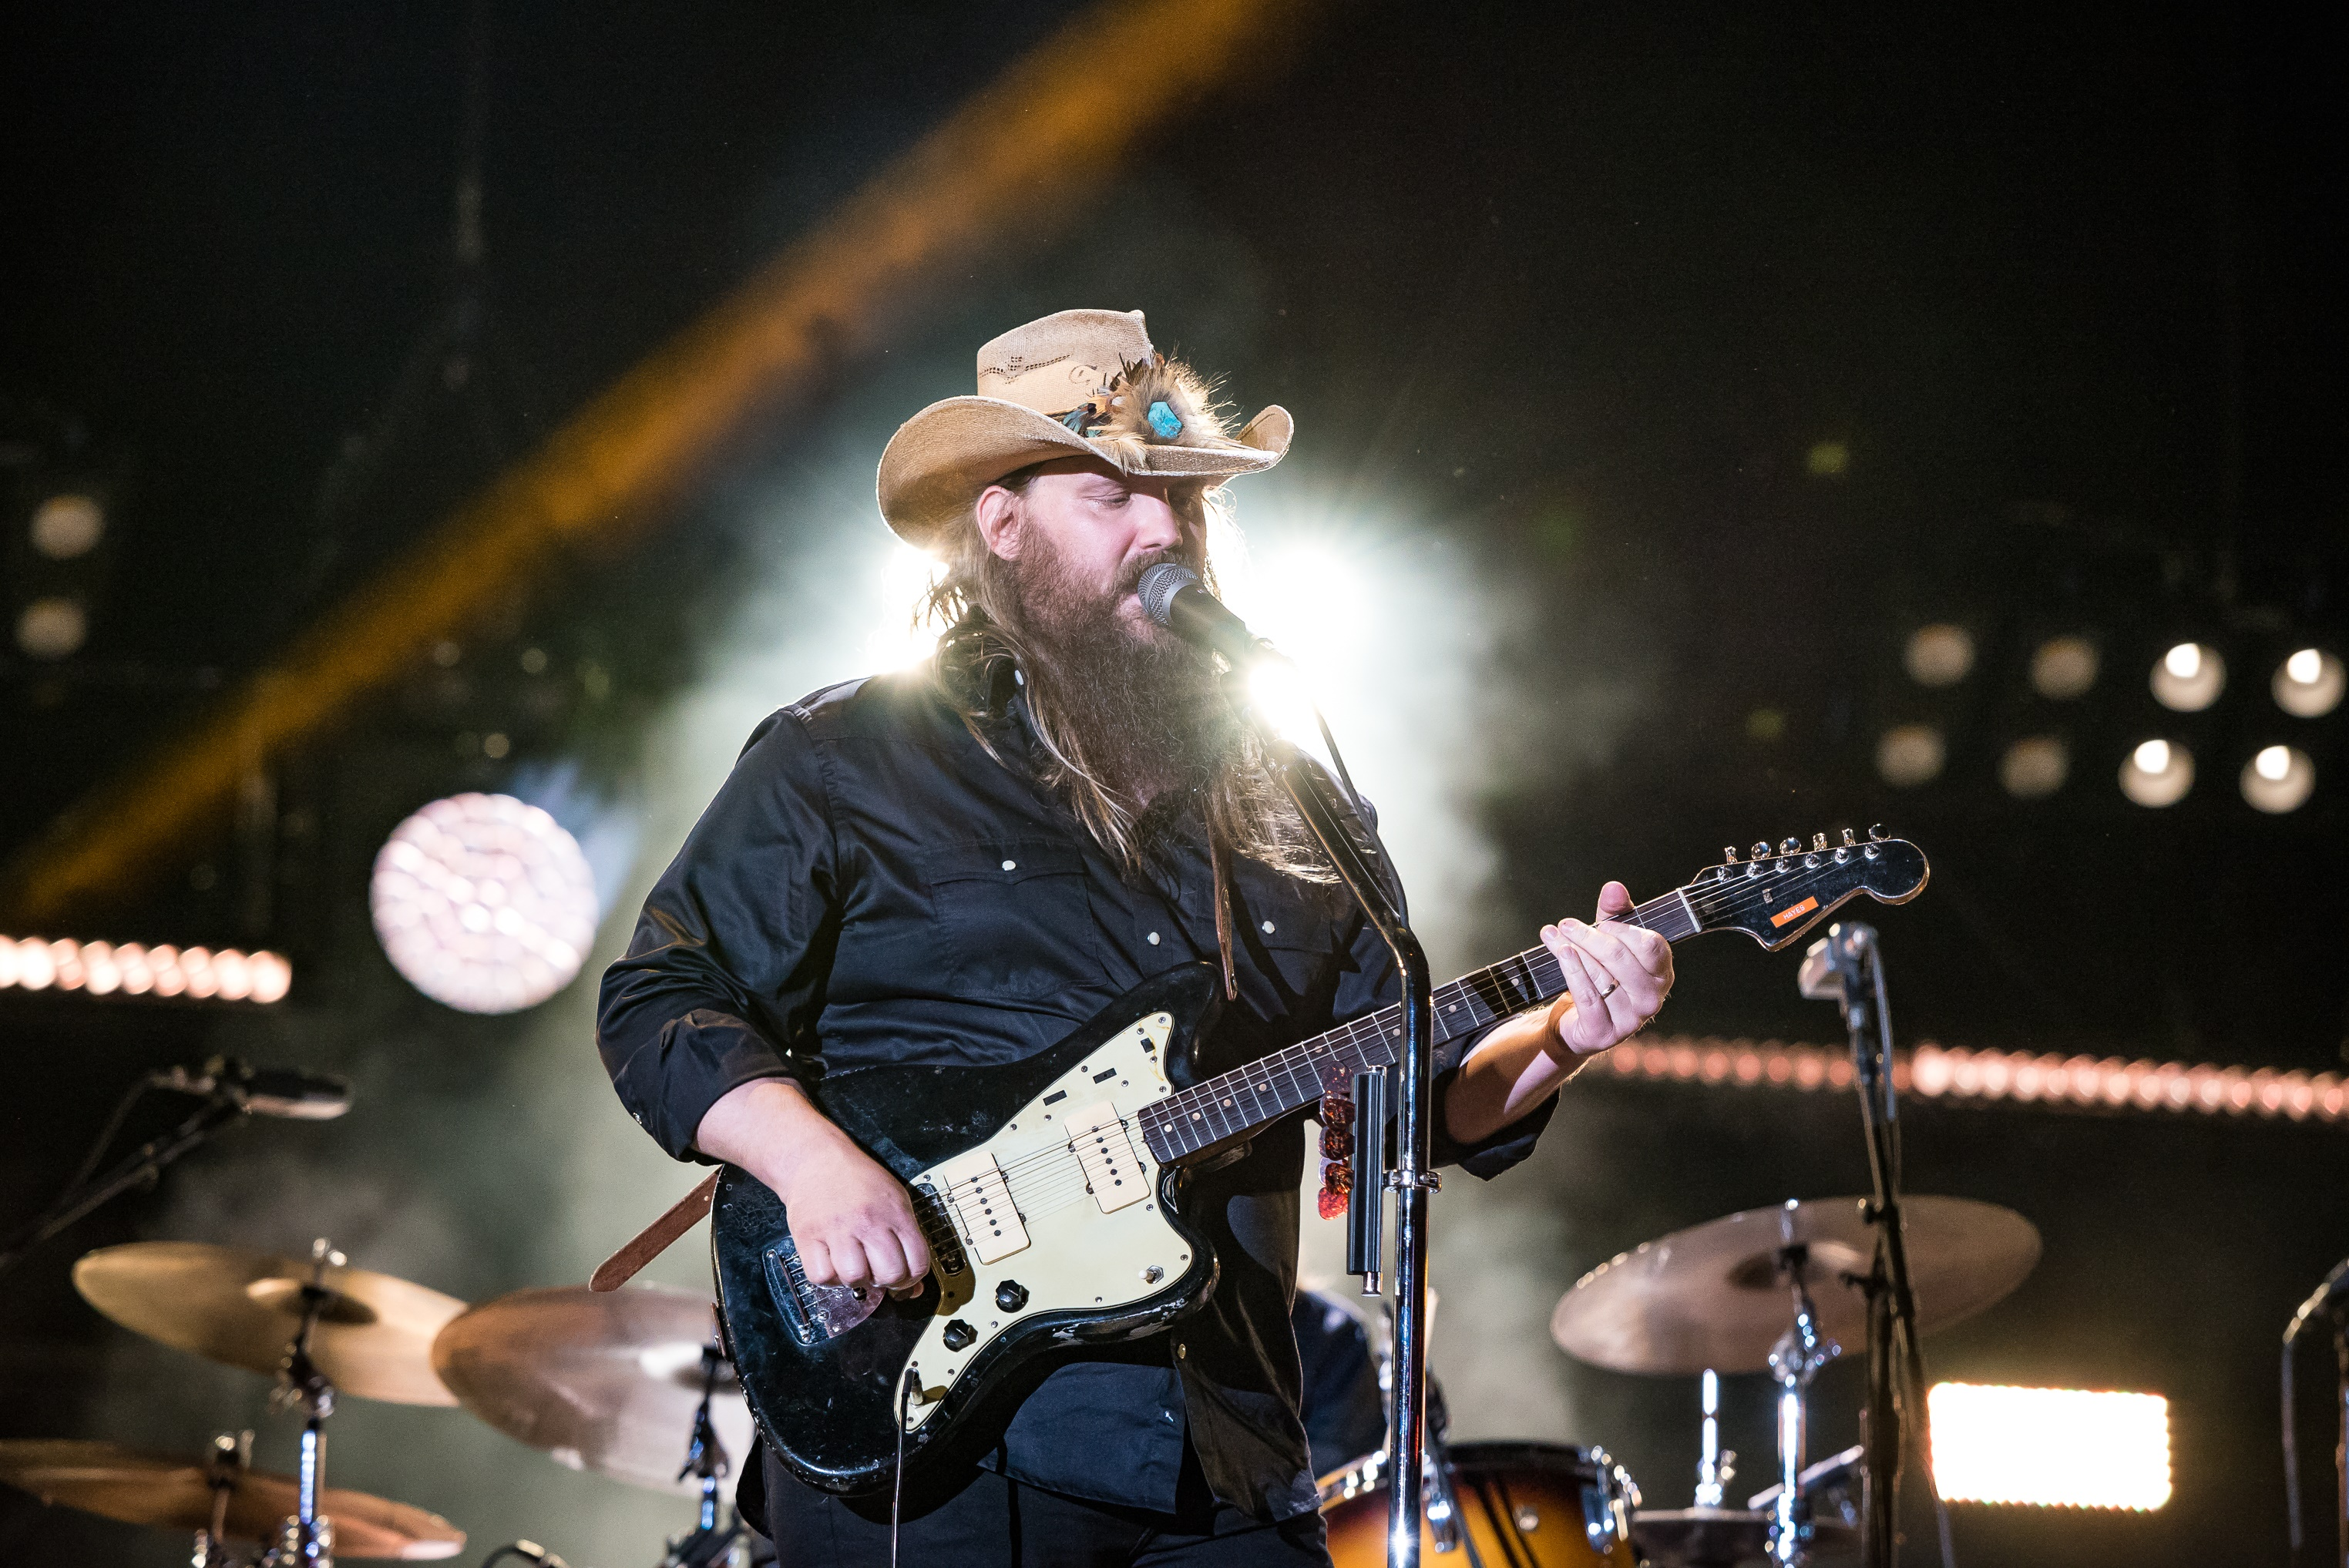 Chris Stapleton, Kacey Musgraves and More to Play Farm Aid 2018